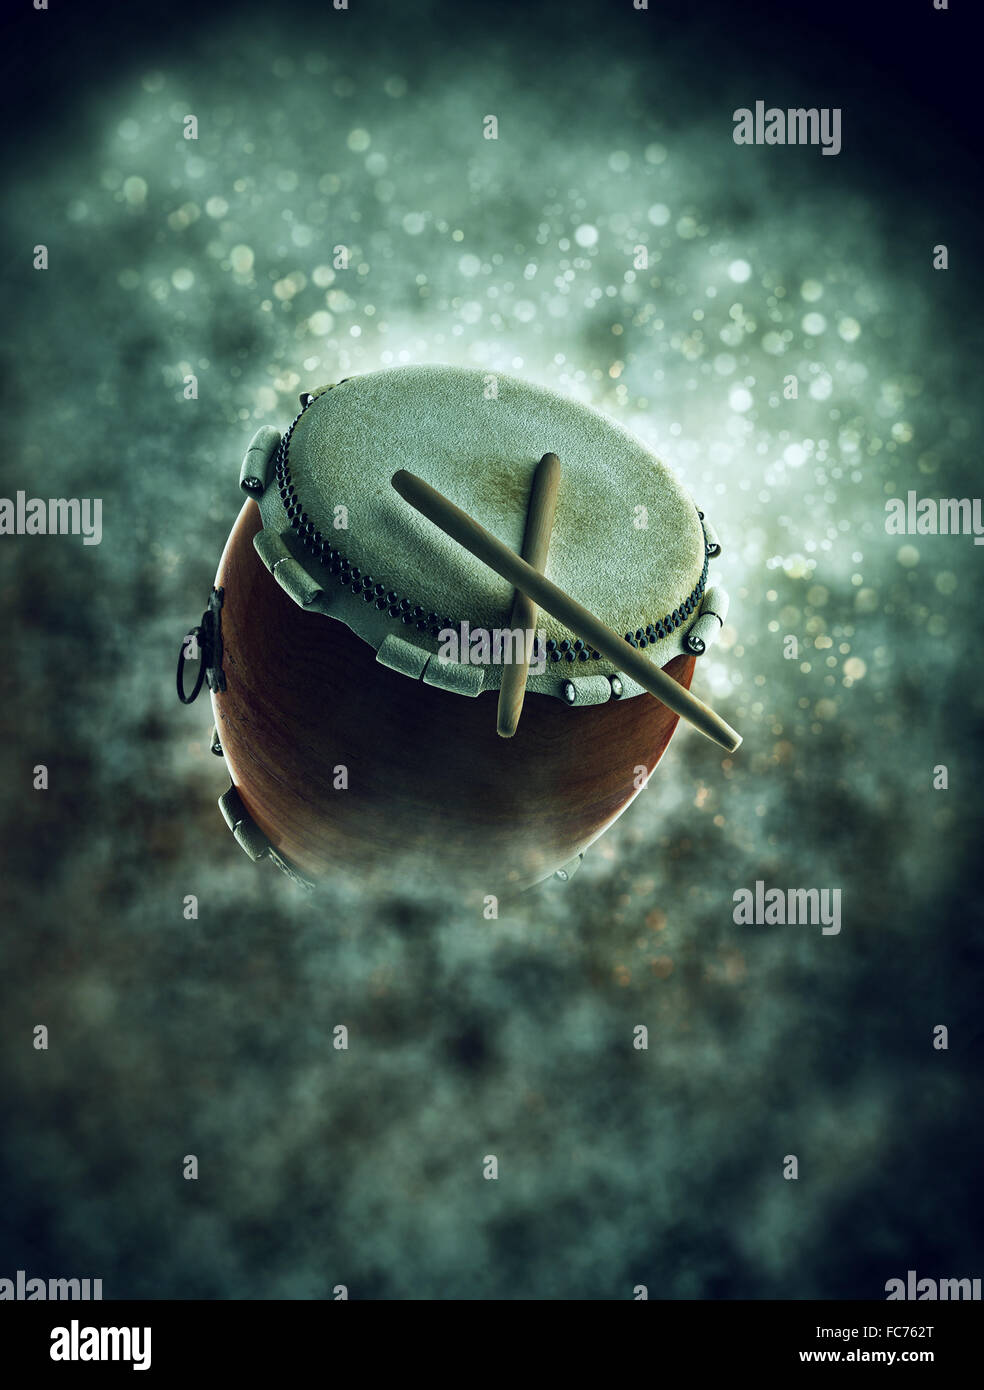 Ramadan drum in smoke with bokeh - Stock Image